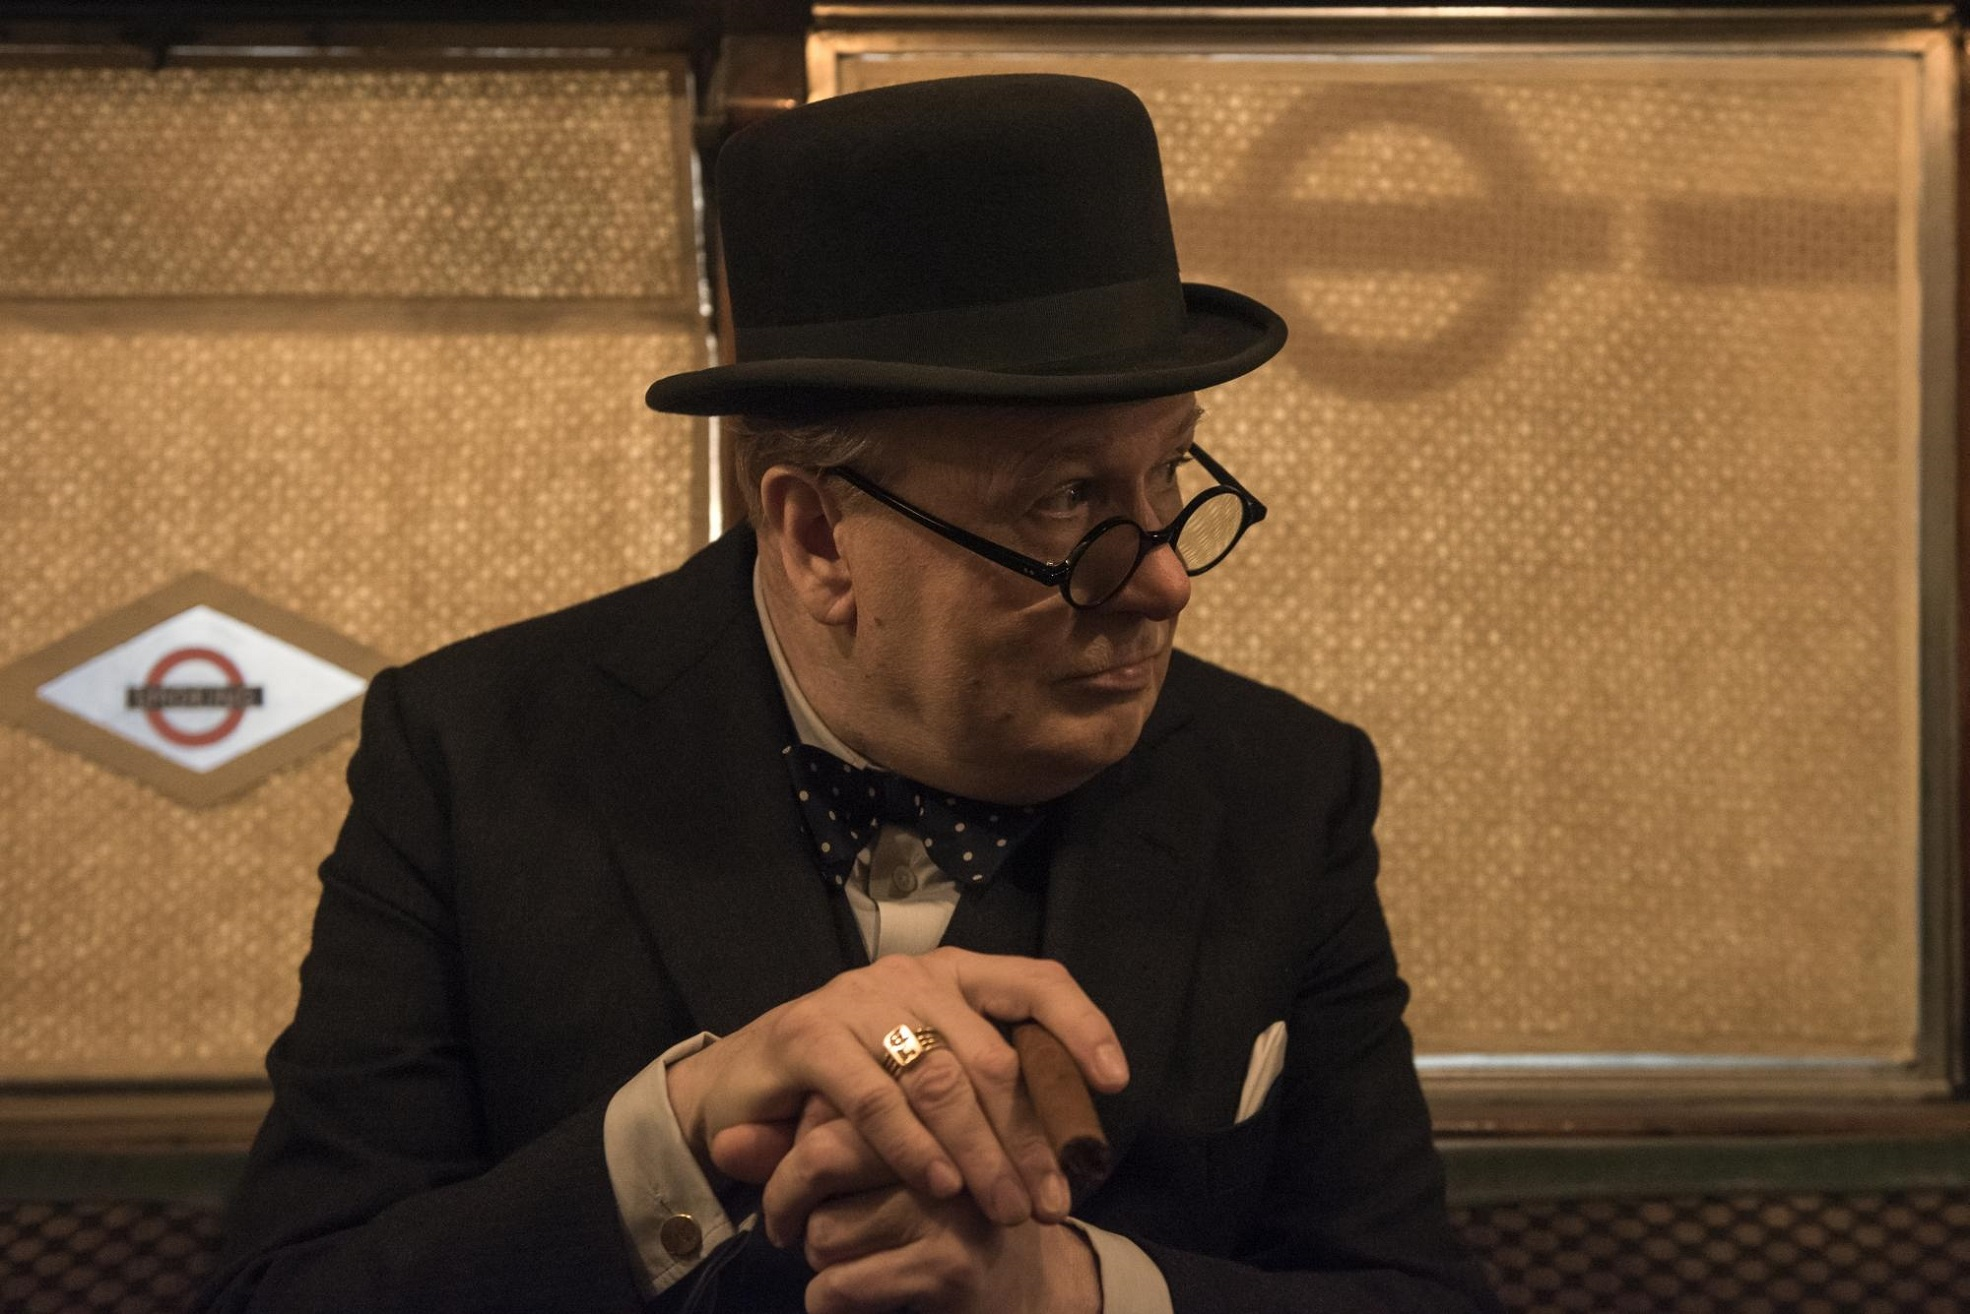 Winston Churchill in der Subway, Copyright: Universal Pictures International Germany GmbH